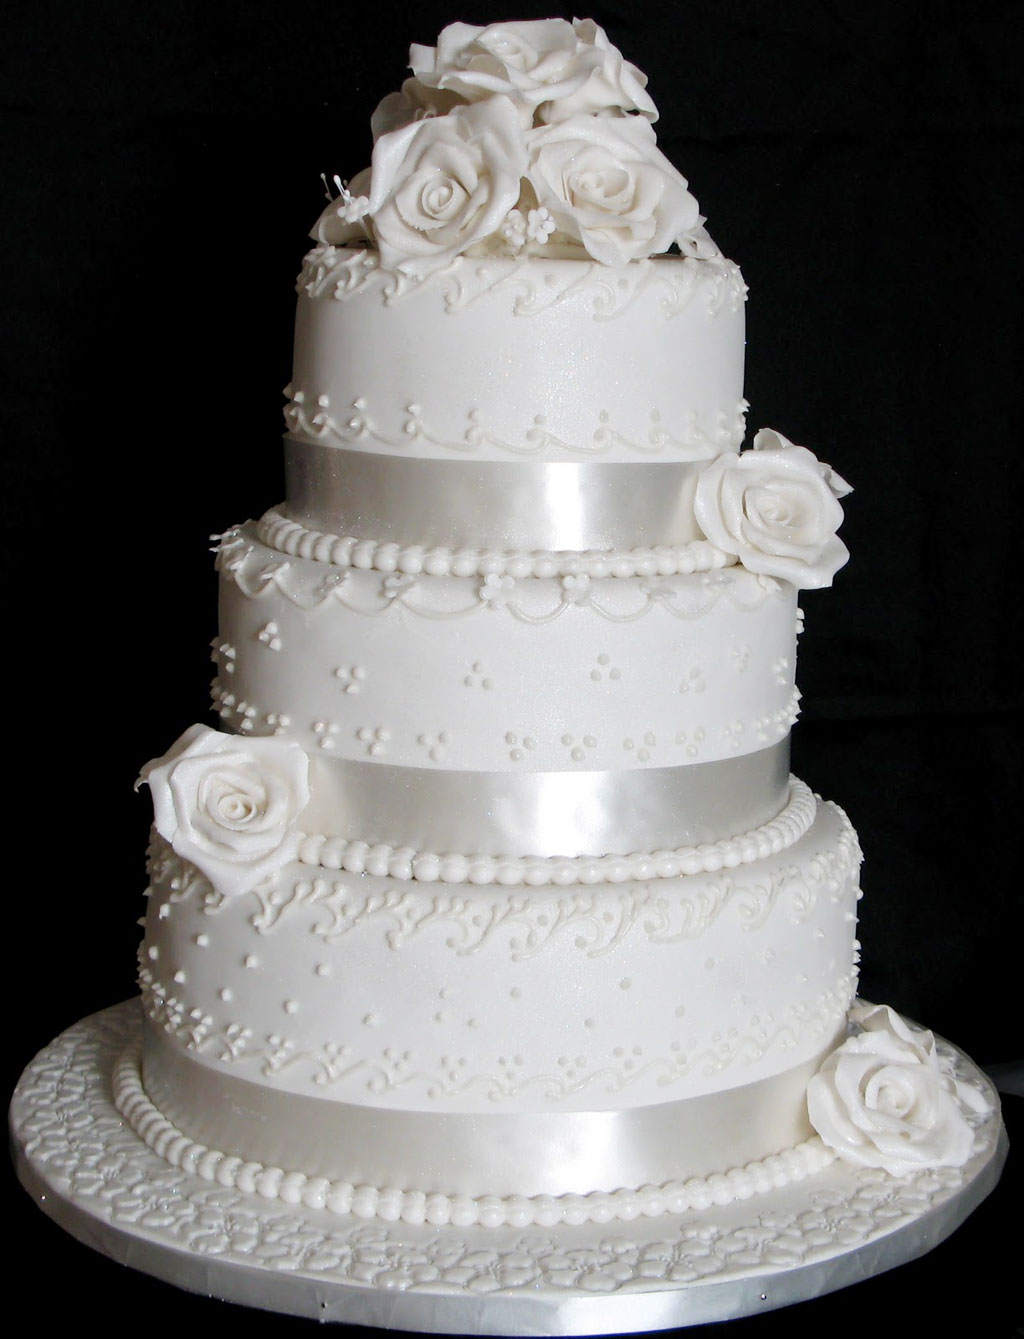 2 layer wedding cake designs layer wedding cake design 2 wedding cake cake 10108